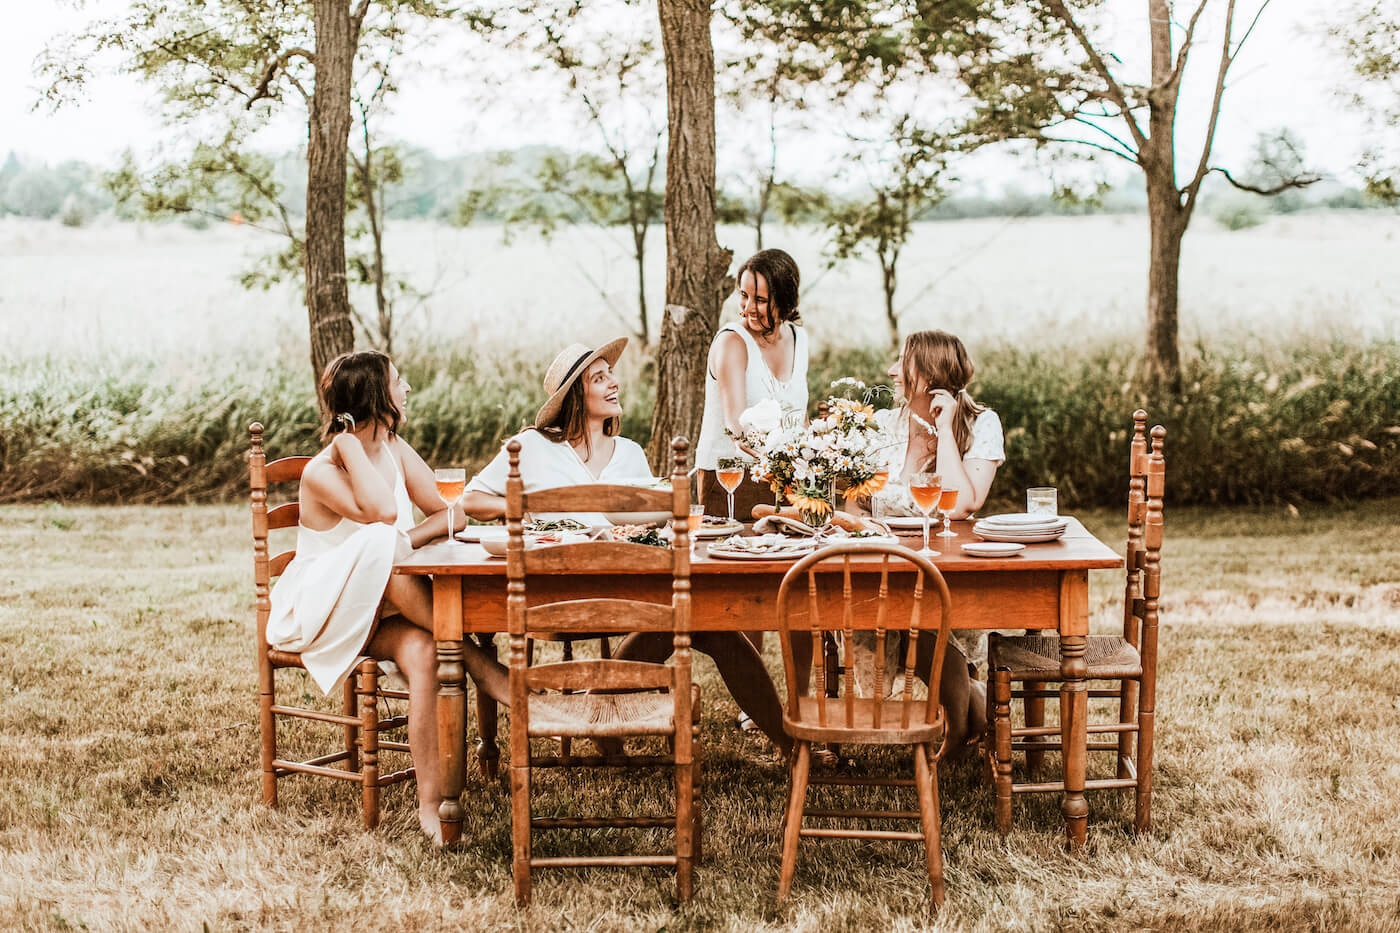 Photo of Women Enjoying a Meal Together